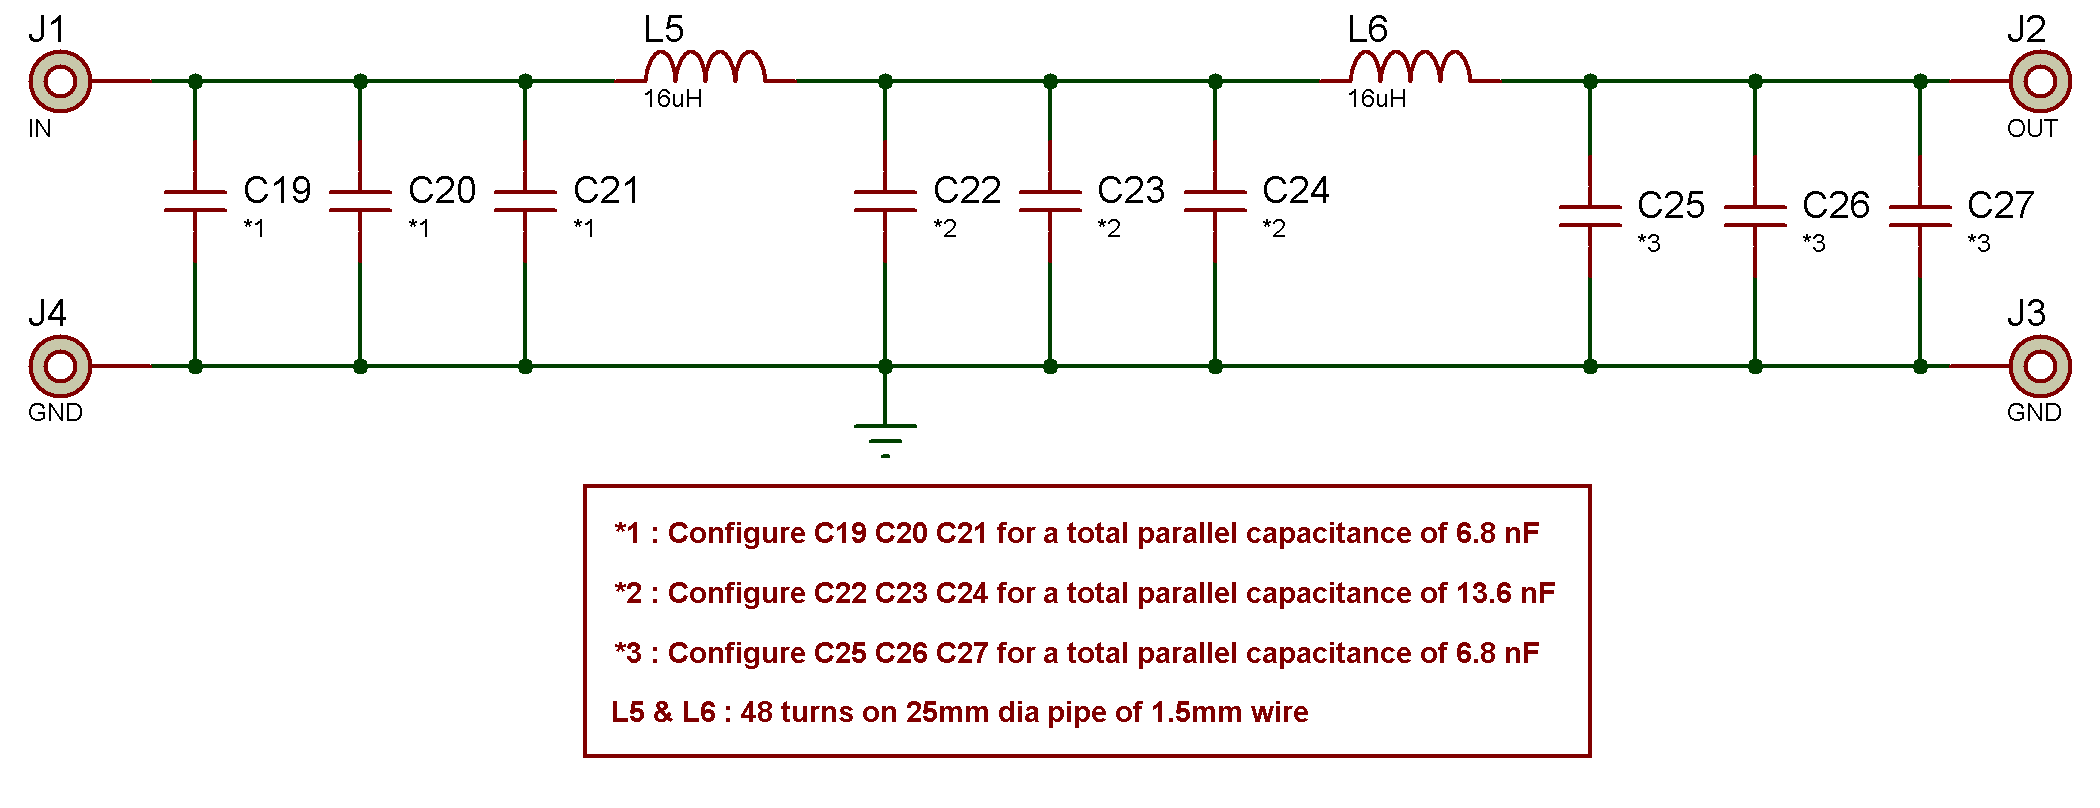 472 Khz Transmitter George Smart M1geo Capacitor Fourthorder Lowpass Filter Circuit Diagram Low Pass Schematic Mk 2